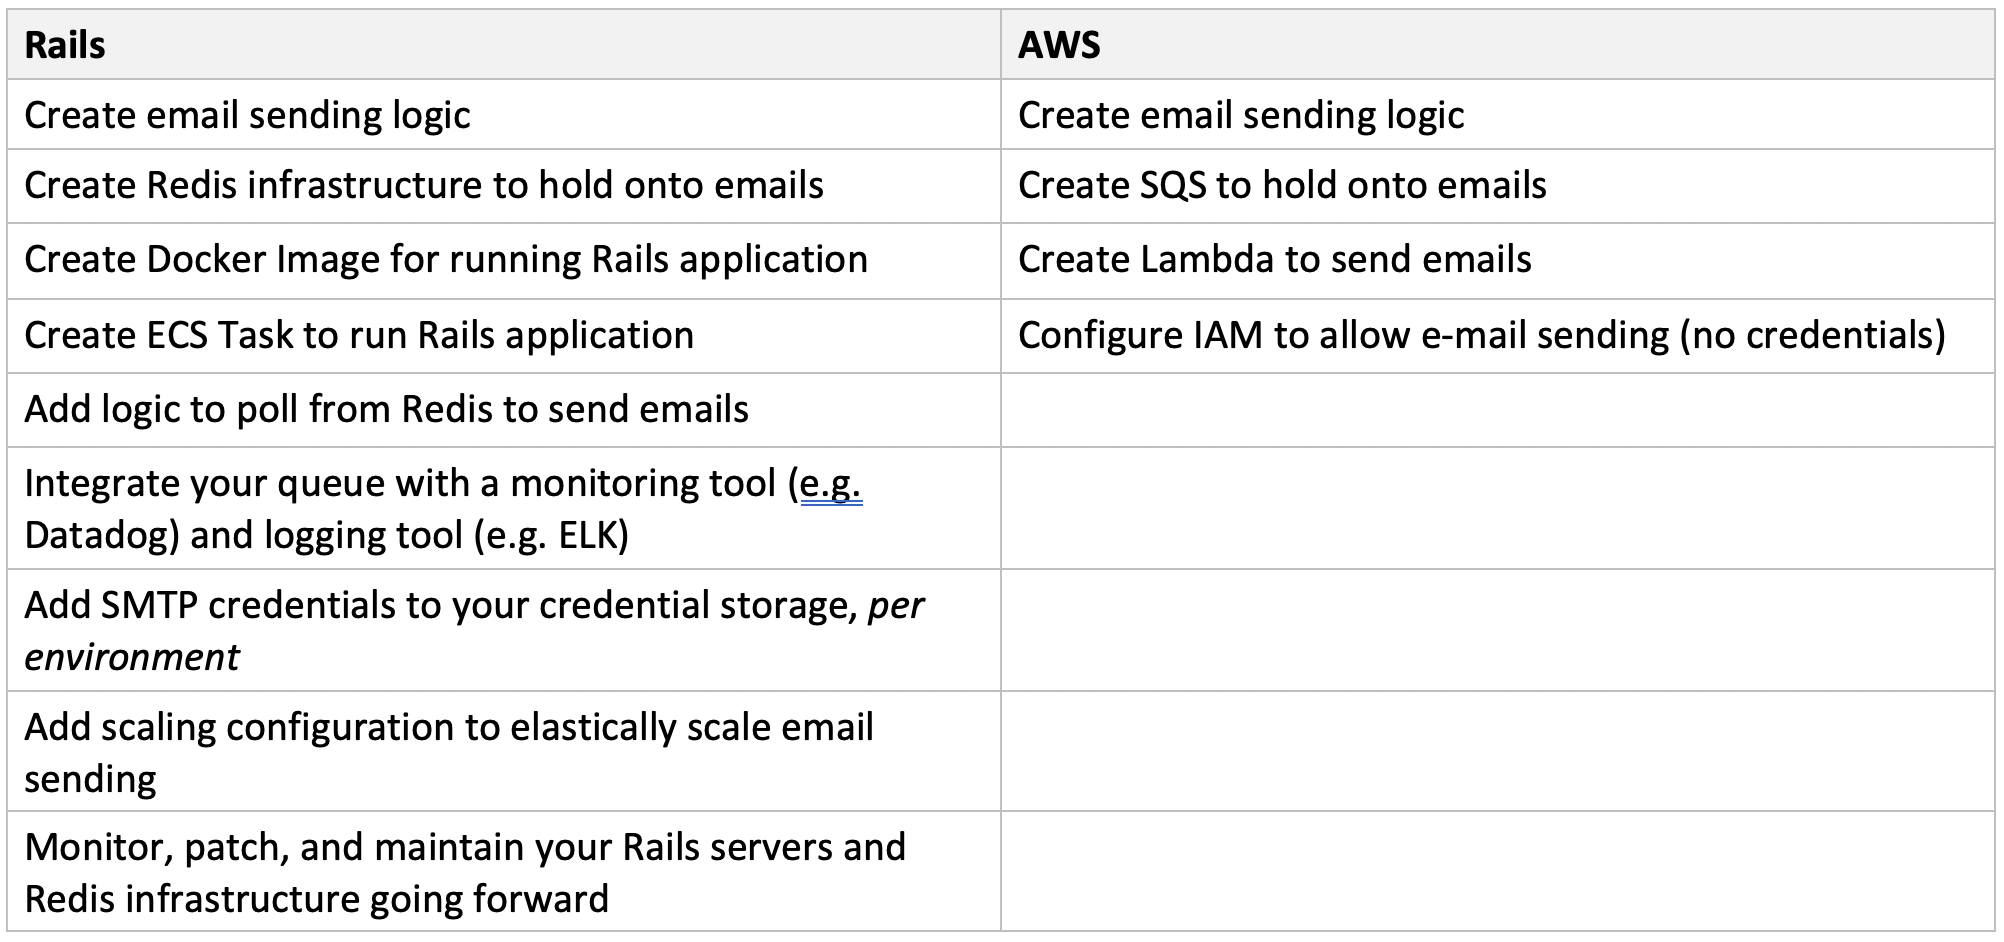 Total number of steps to process background tasks with Rails vs. AWS